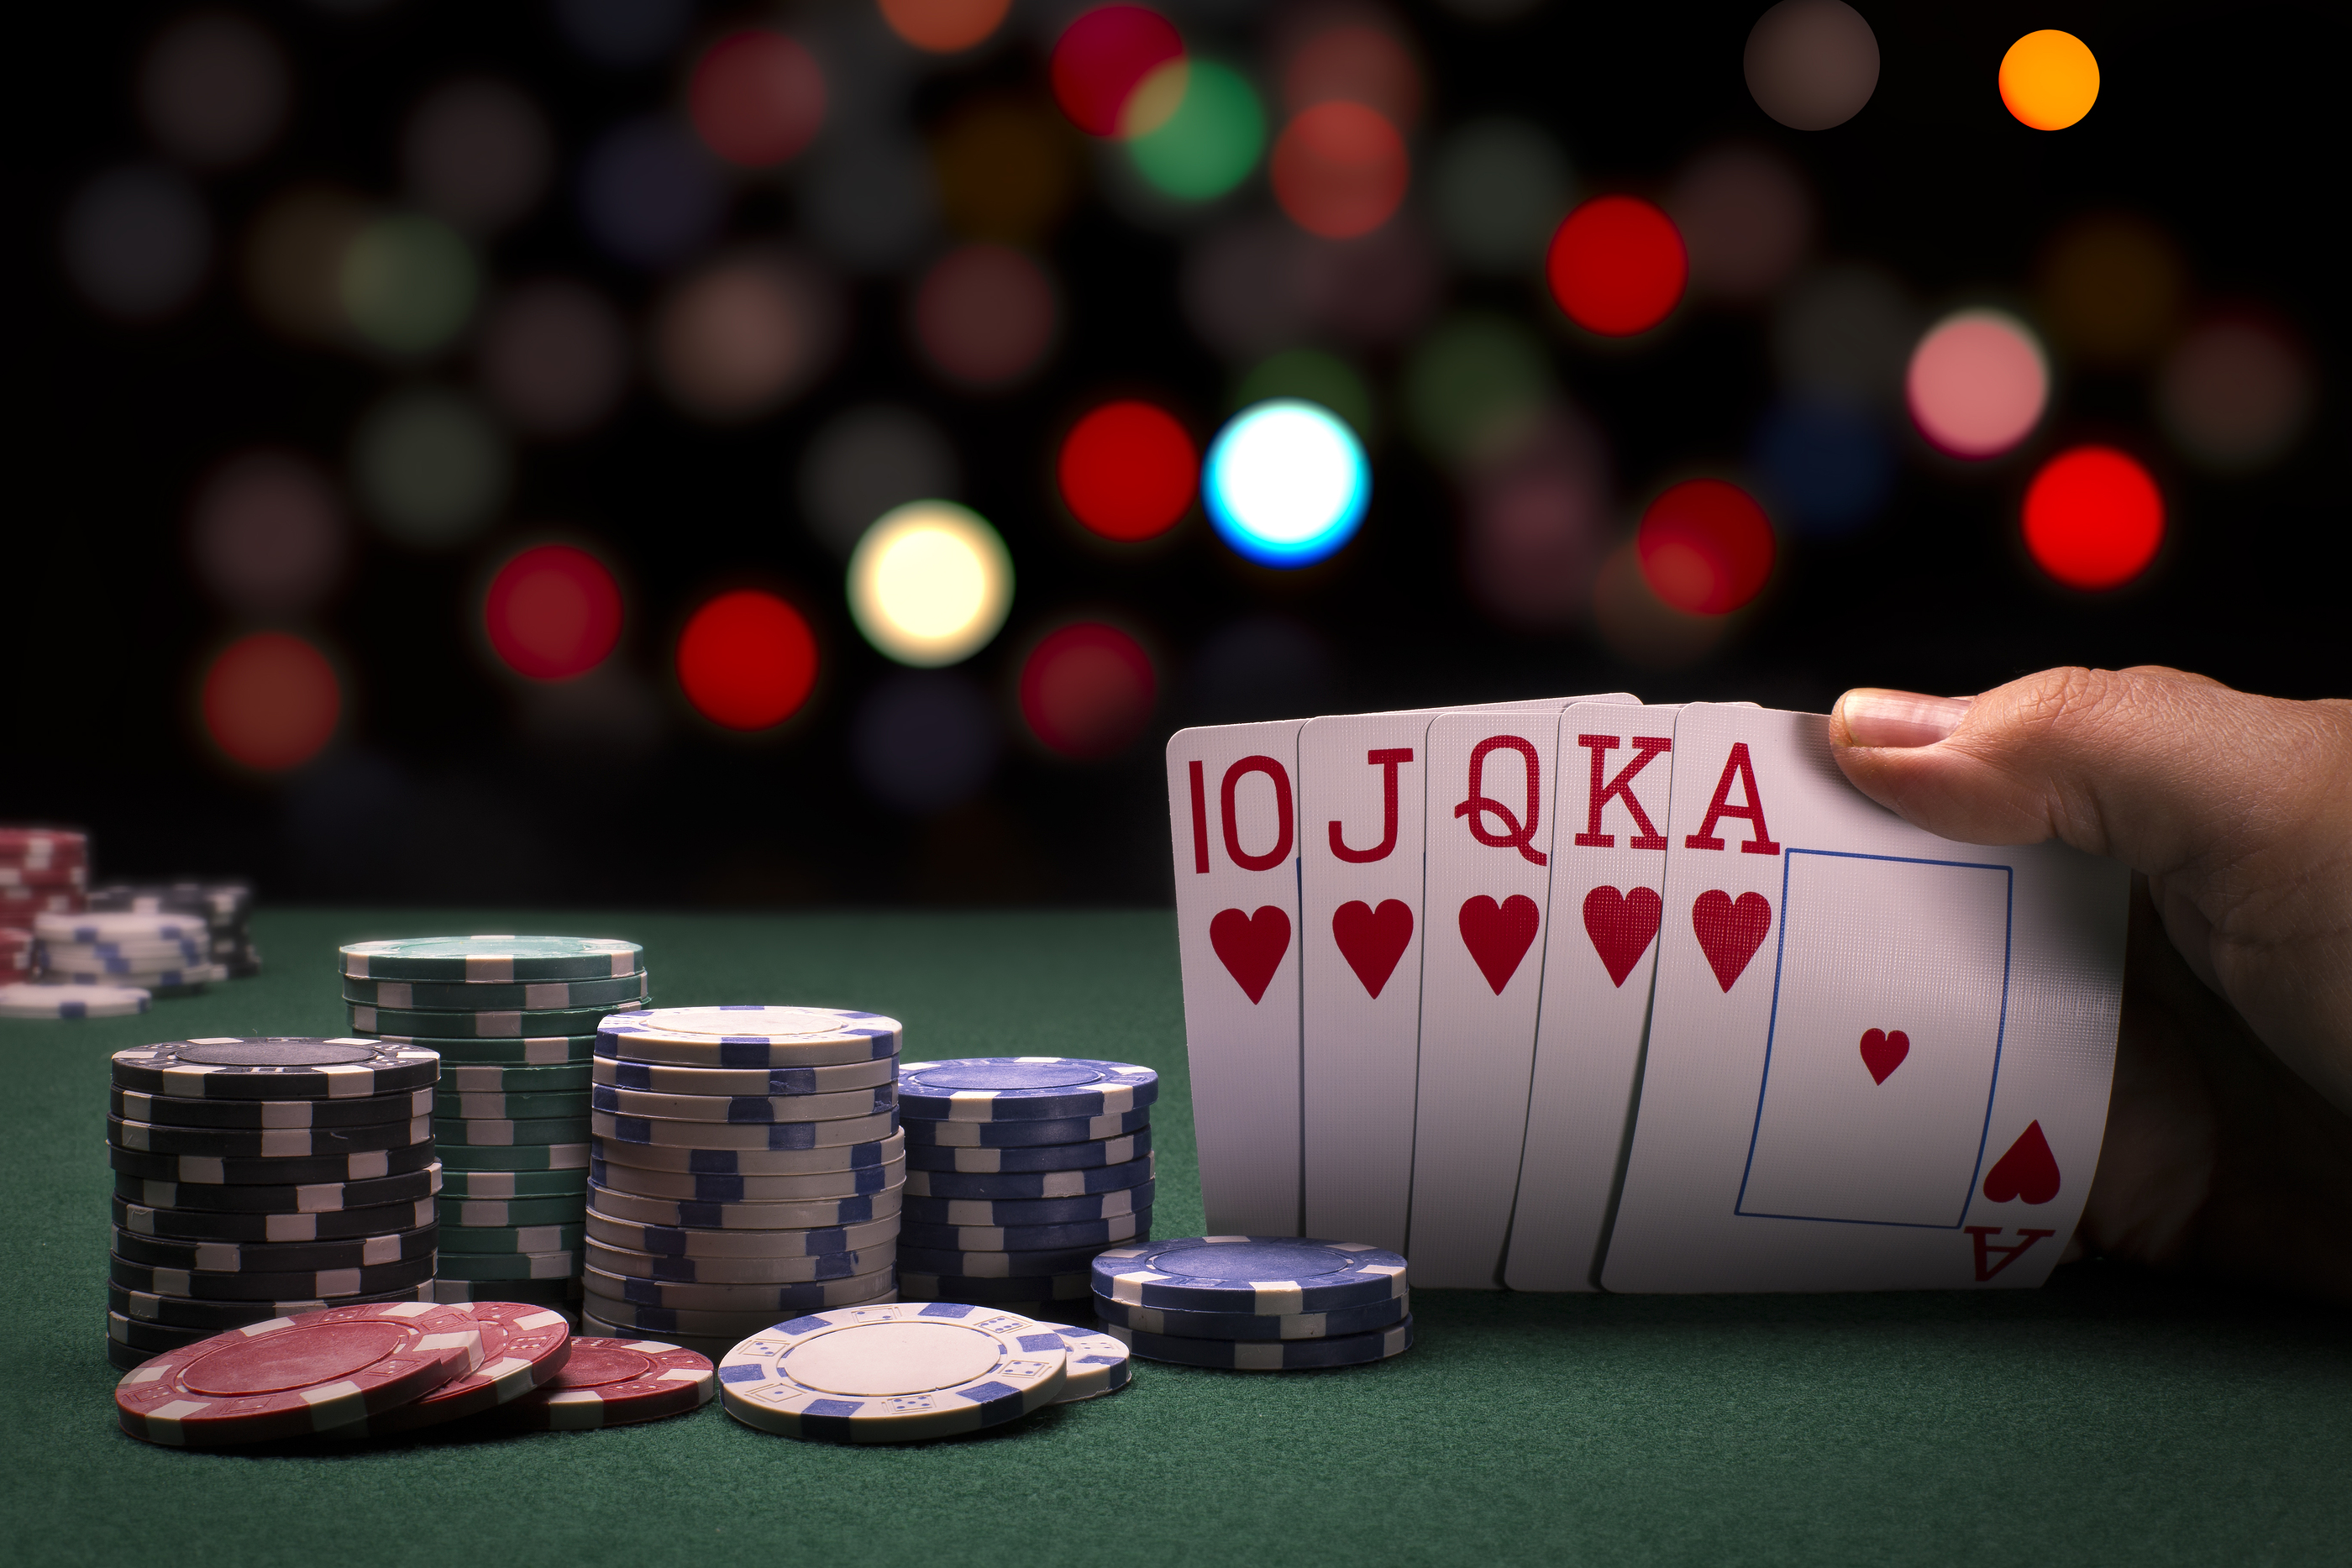 Probability of different poker hands